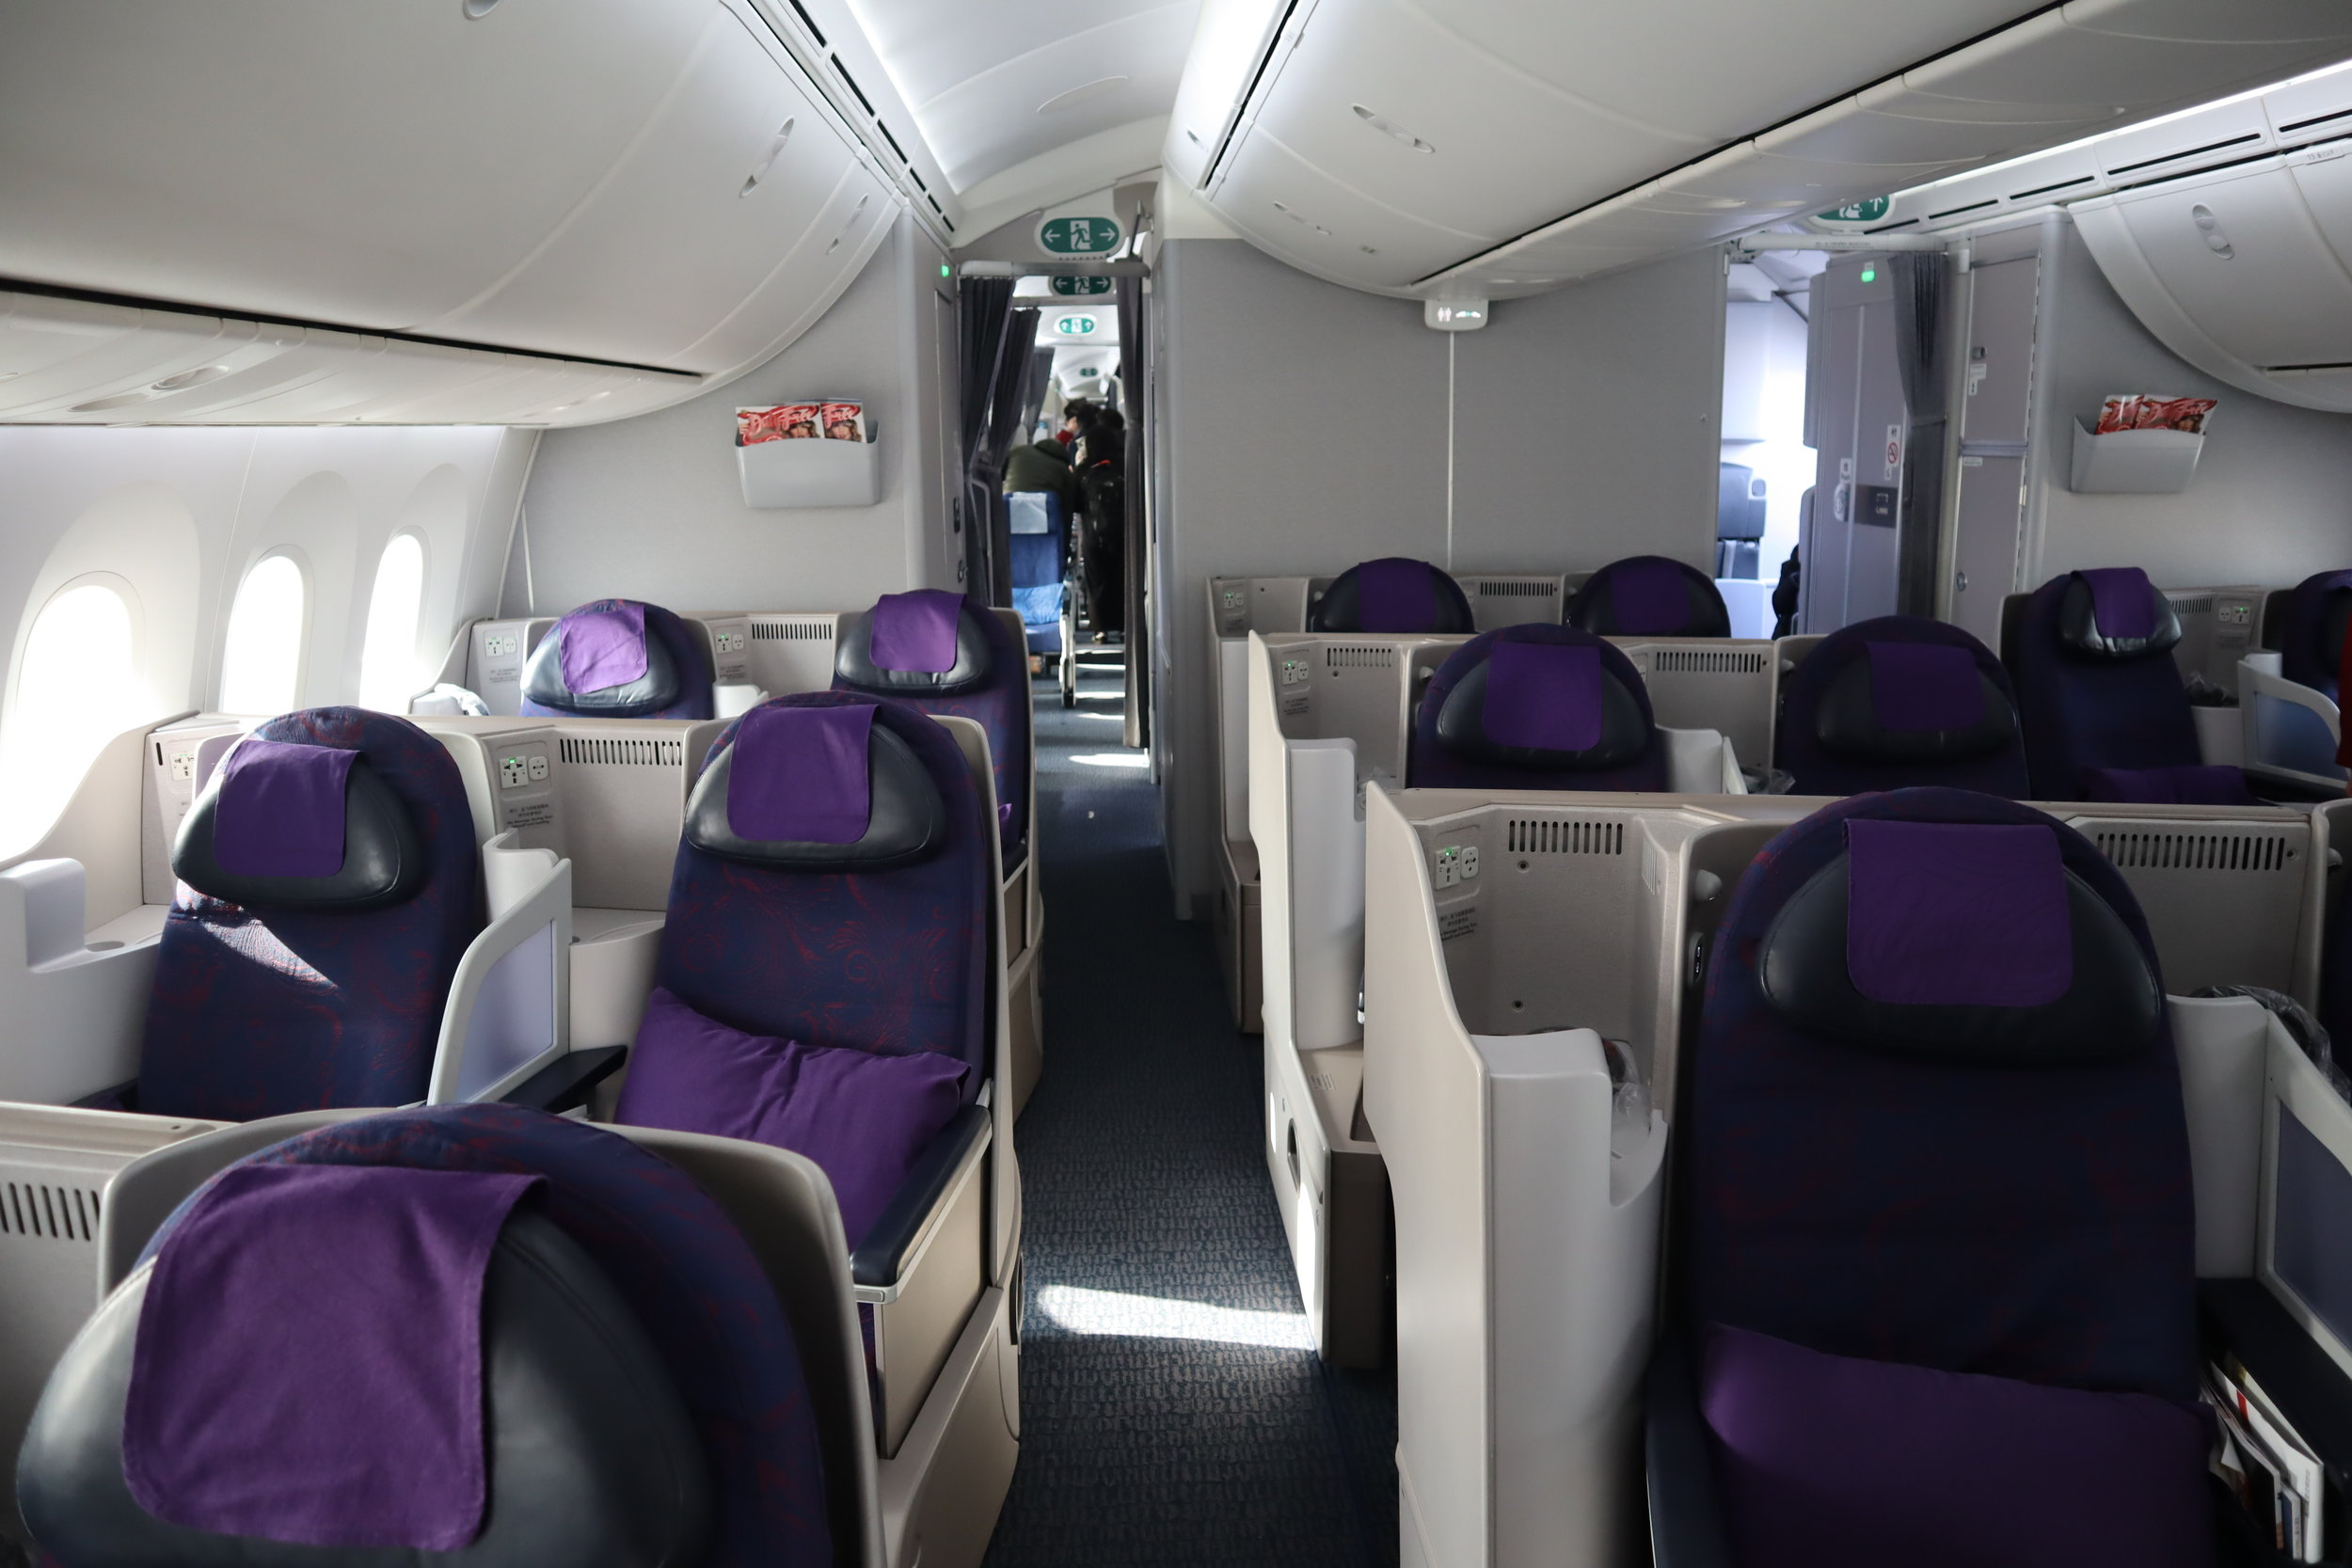 Air China business class – Cabin